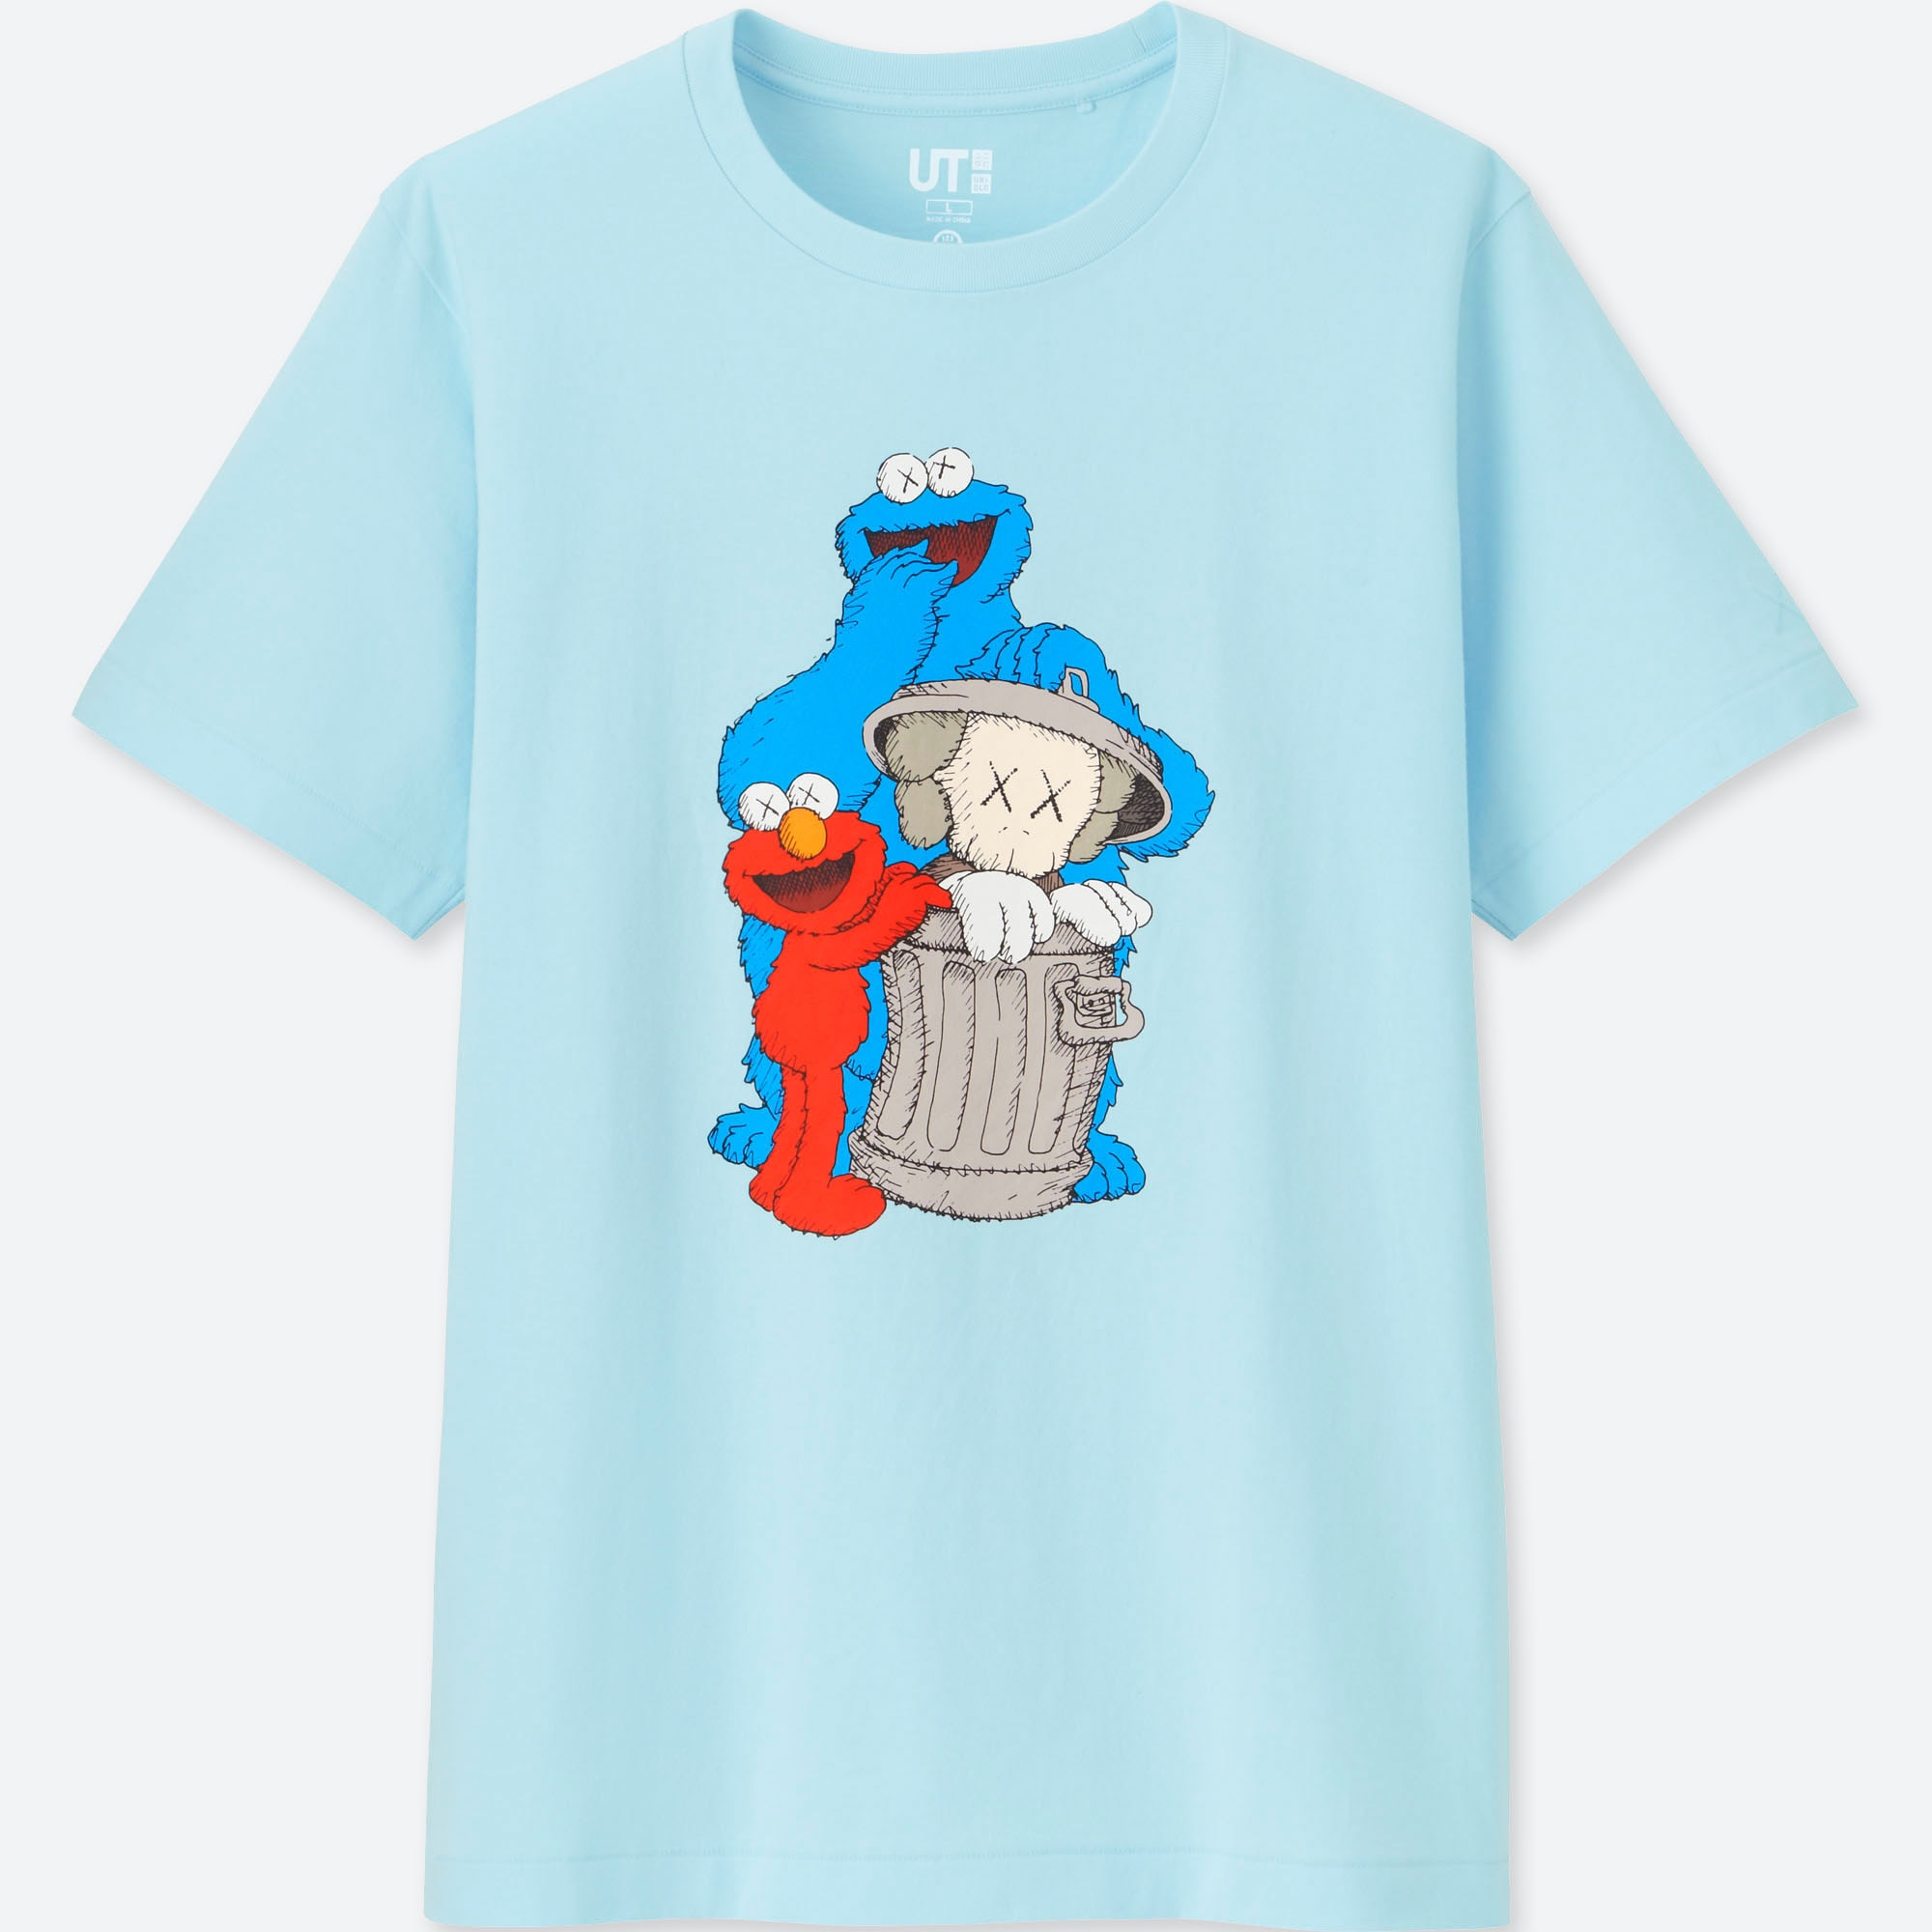 591edf5b KAWS X SESAME STREET UT (SHORT-SLEEVE GRAPHIC T-SHIRT) | UNIQLO US